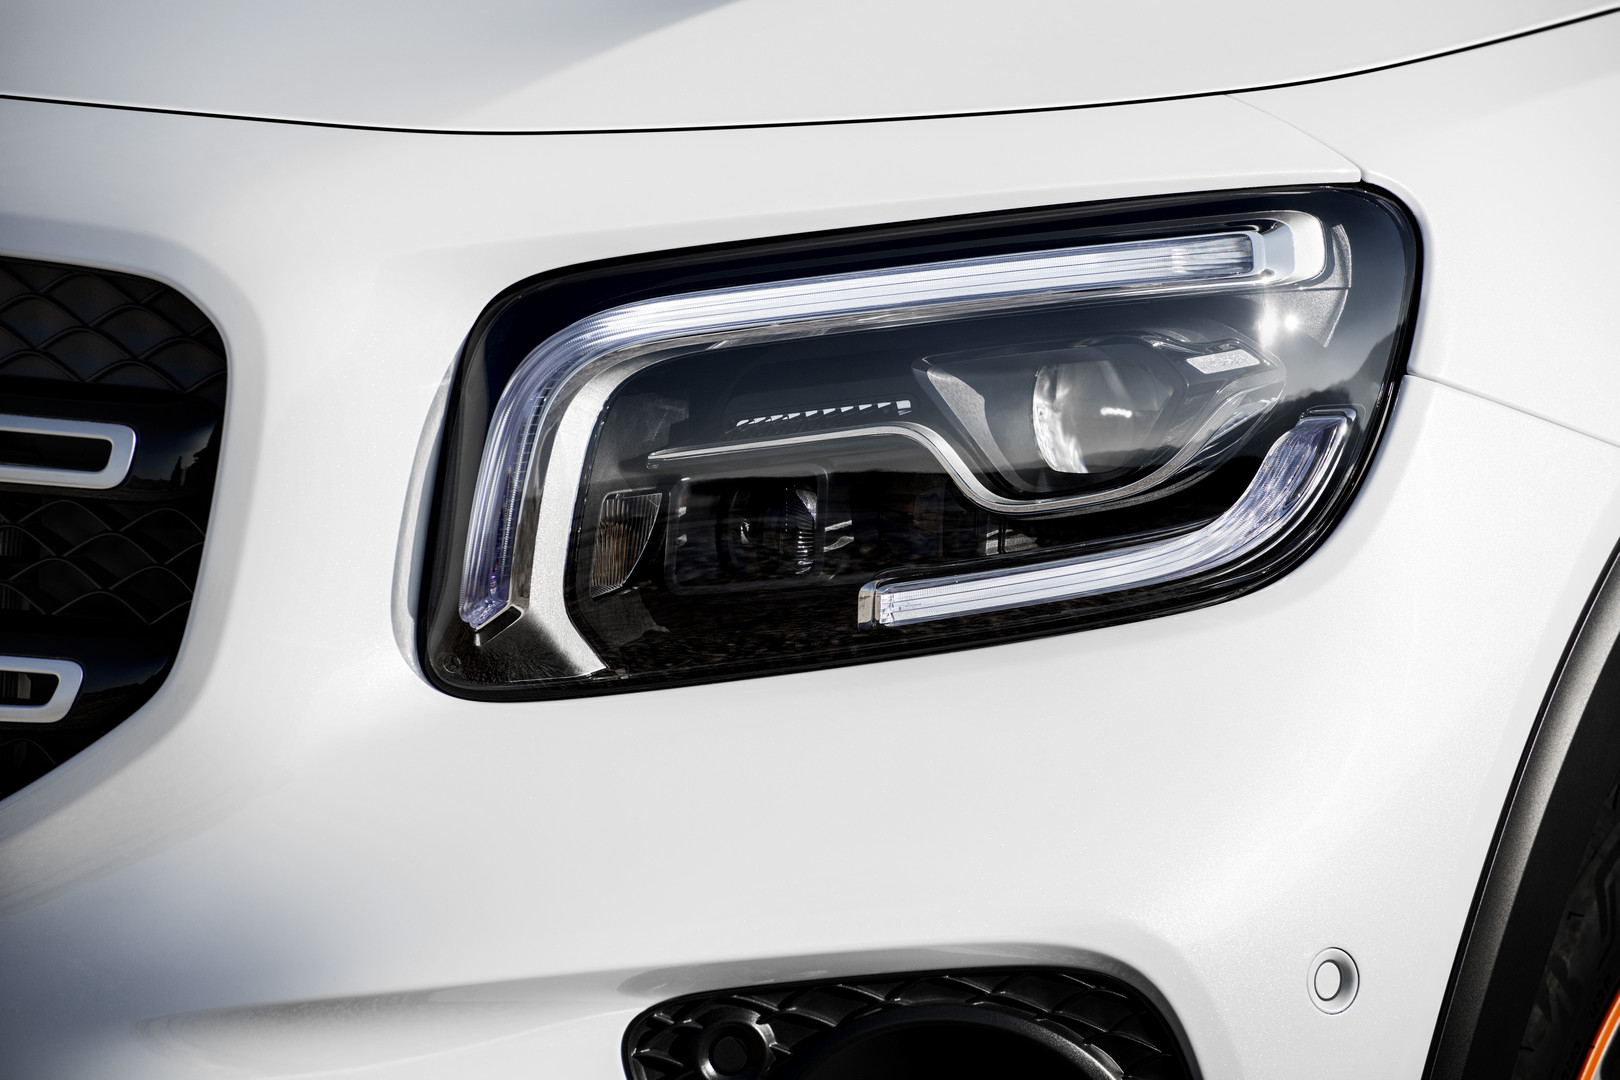 Mercedes-Benz GLB Headlights